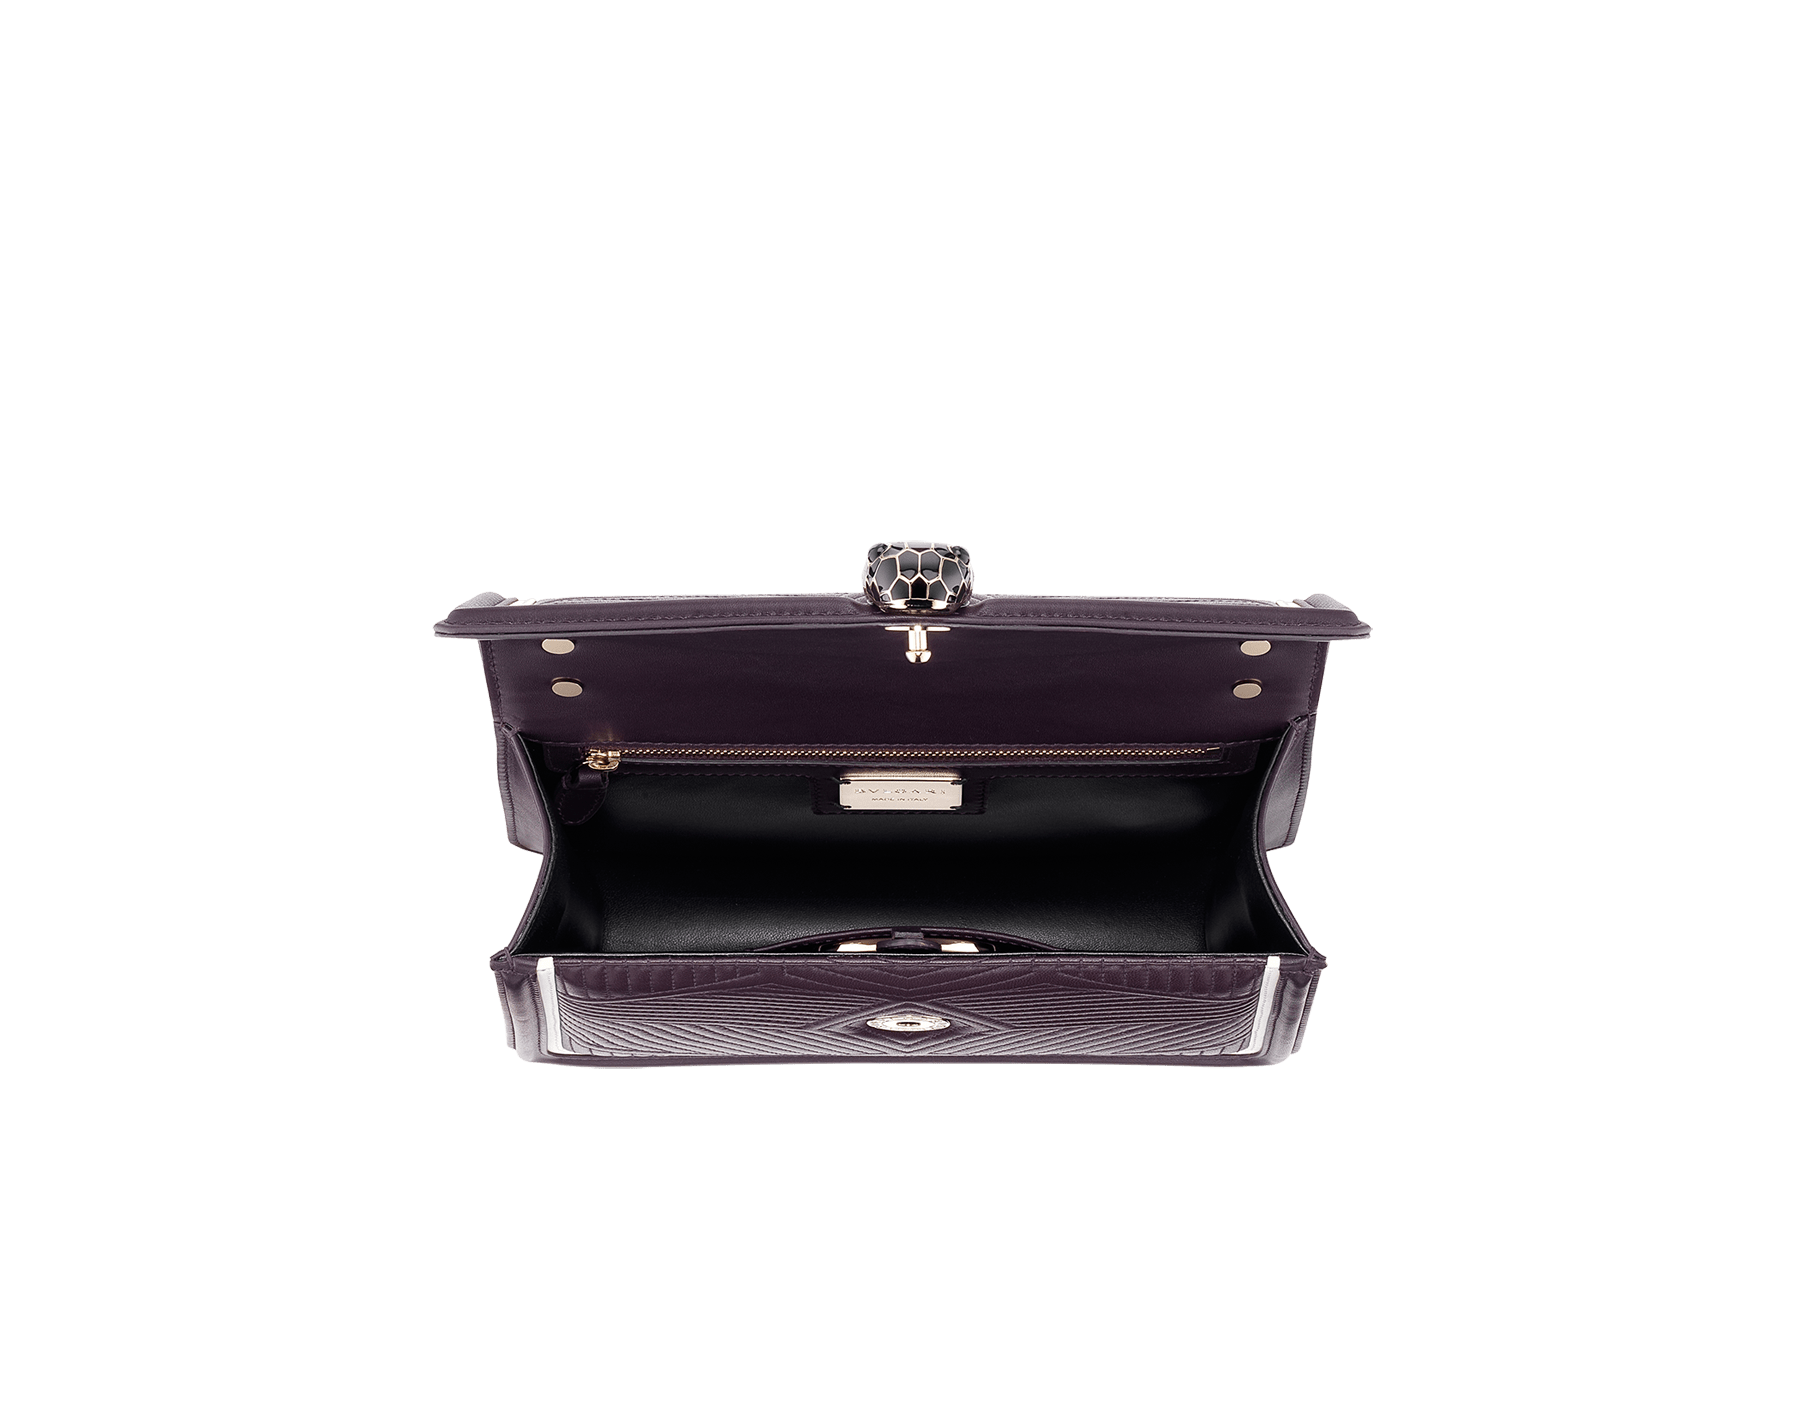 """Serpenti Diamond Blast"" shoulder bag in plum amethyst quilted nappa leather body and tone-on-tone and white calf leather frames. Iconic snakehead closure in light gold-plated brass enriched with plum amethyst and black enamel and black onyx eyes. 288635 image 3"